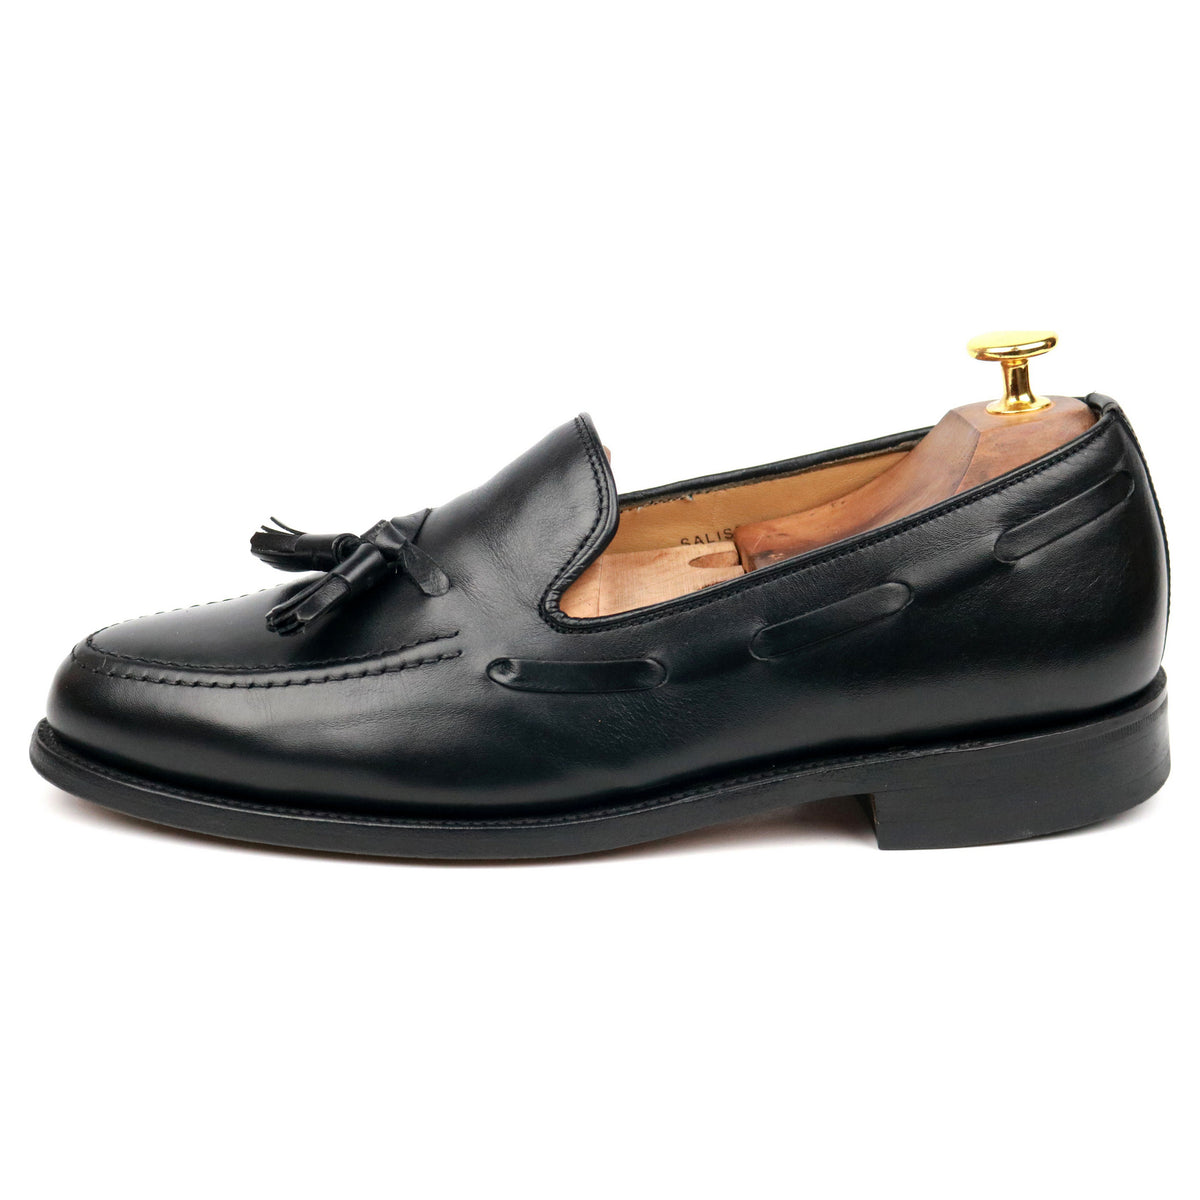 Loake 'Salisbury' Black Leather Tassel Loafers UK 7 E